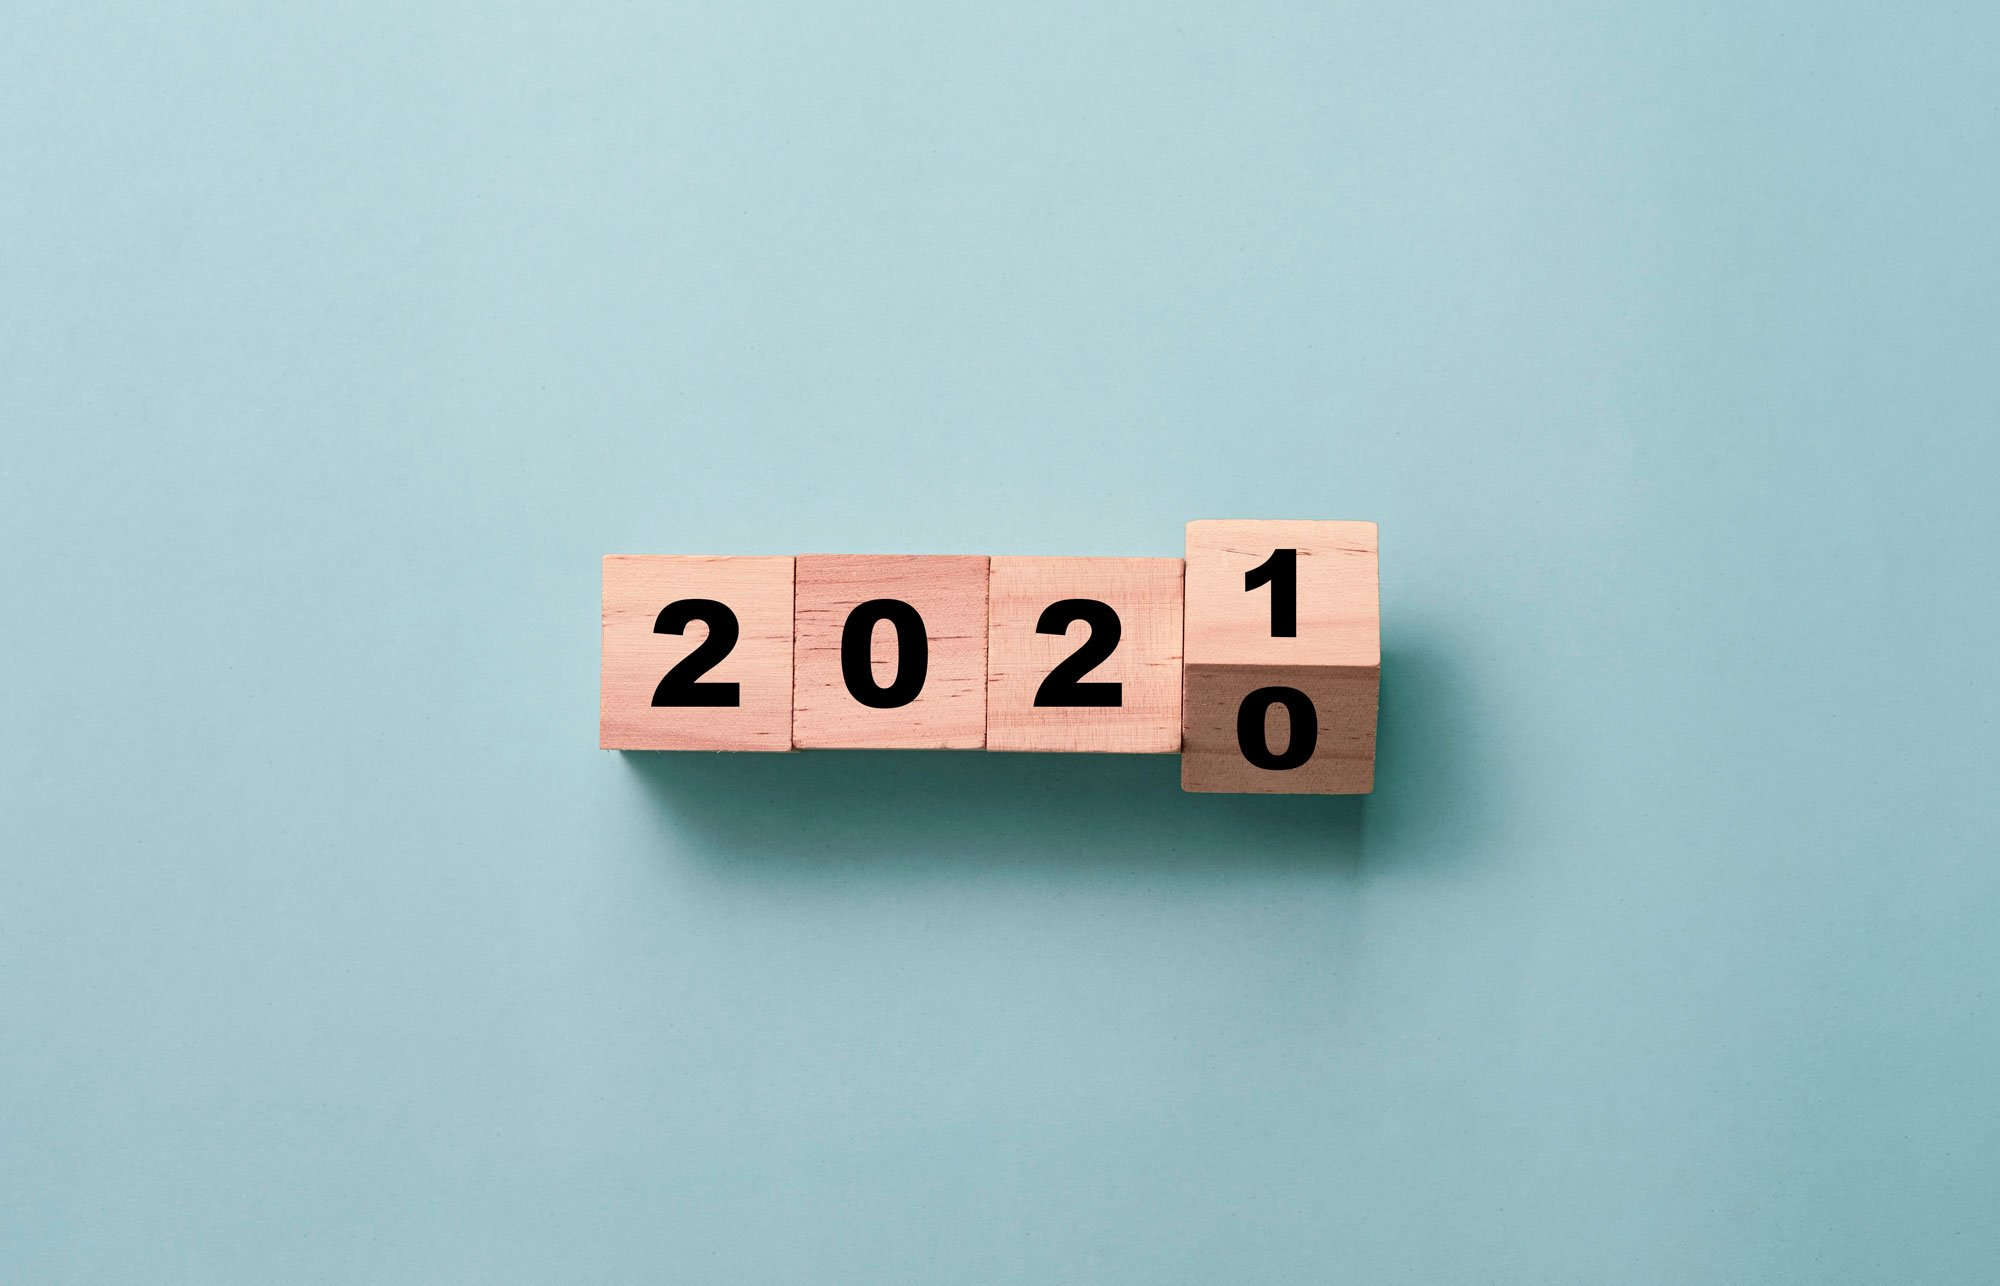 2020 numbers